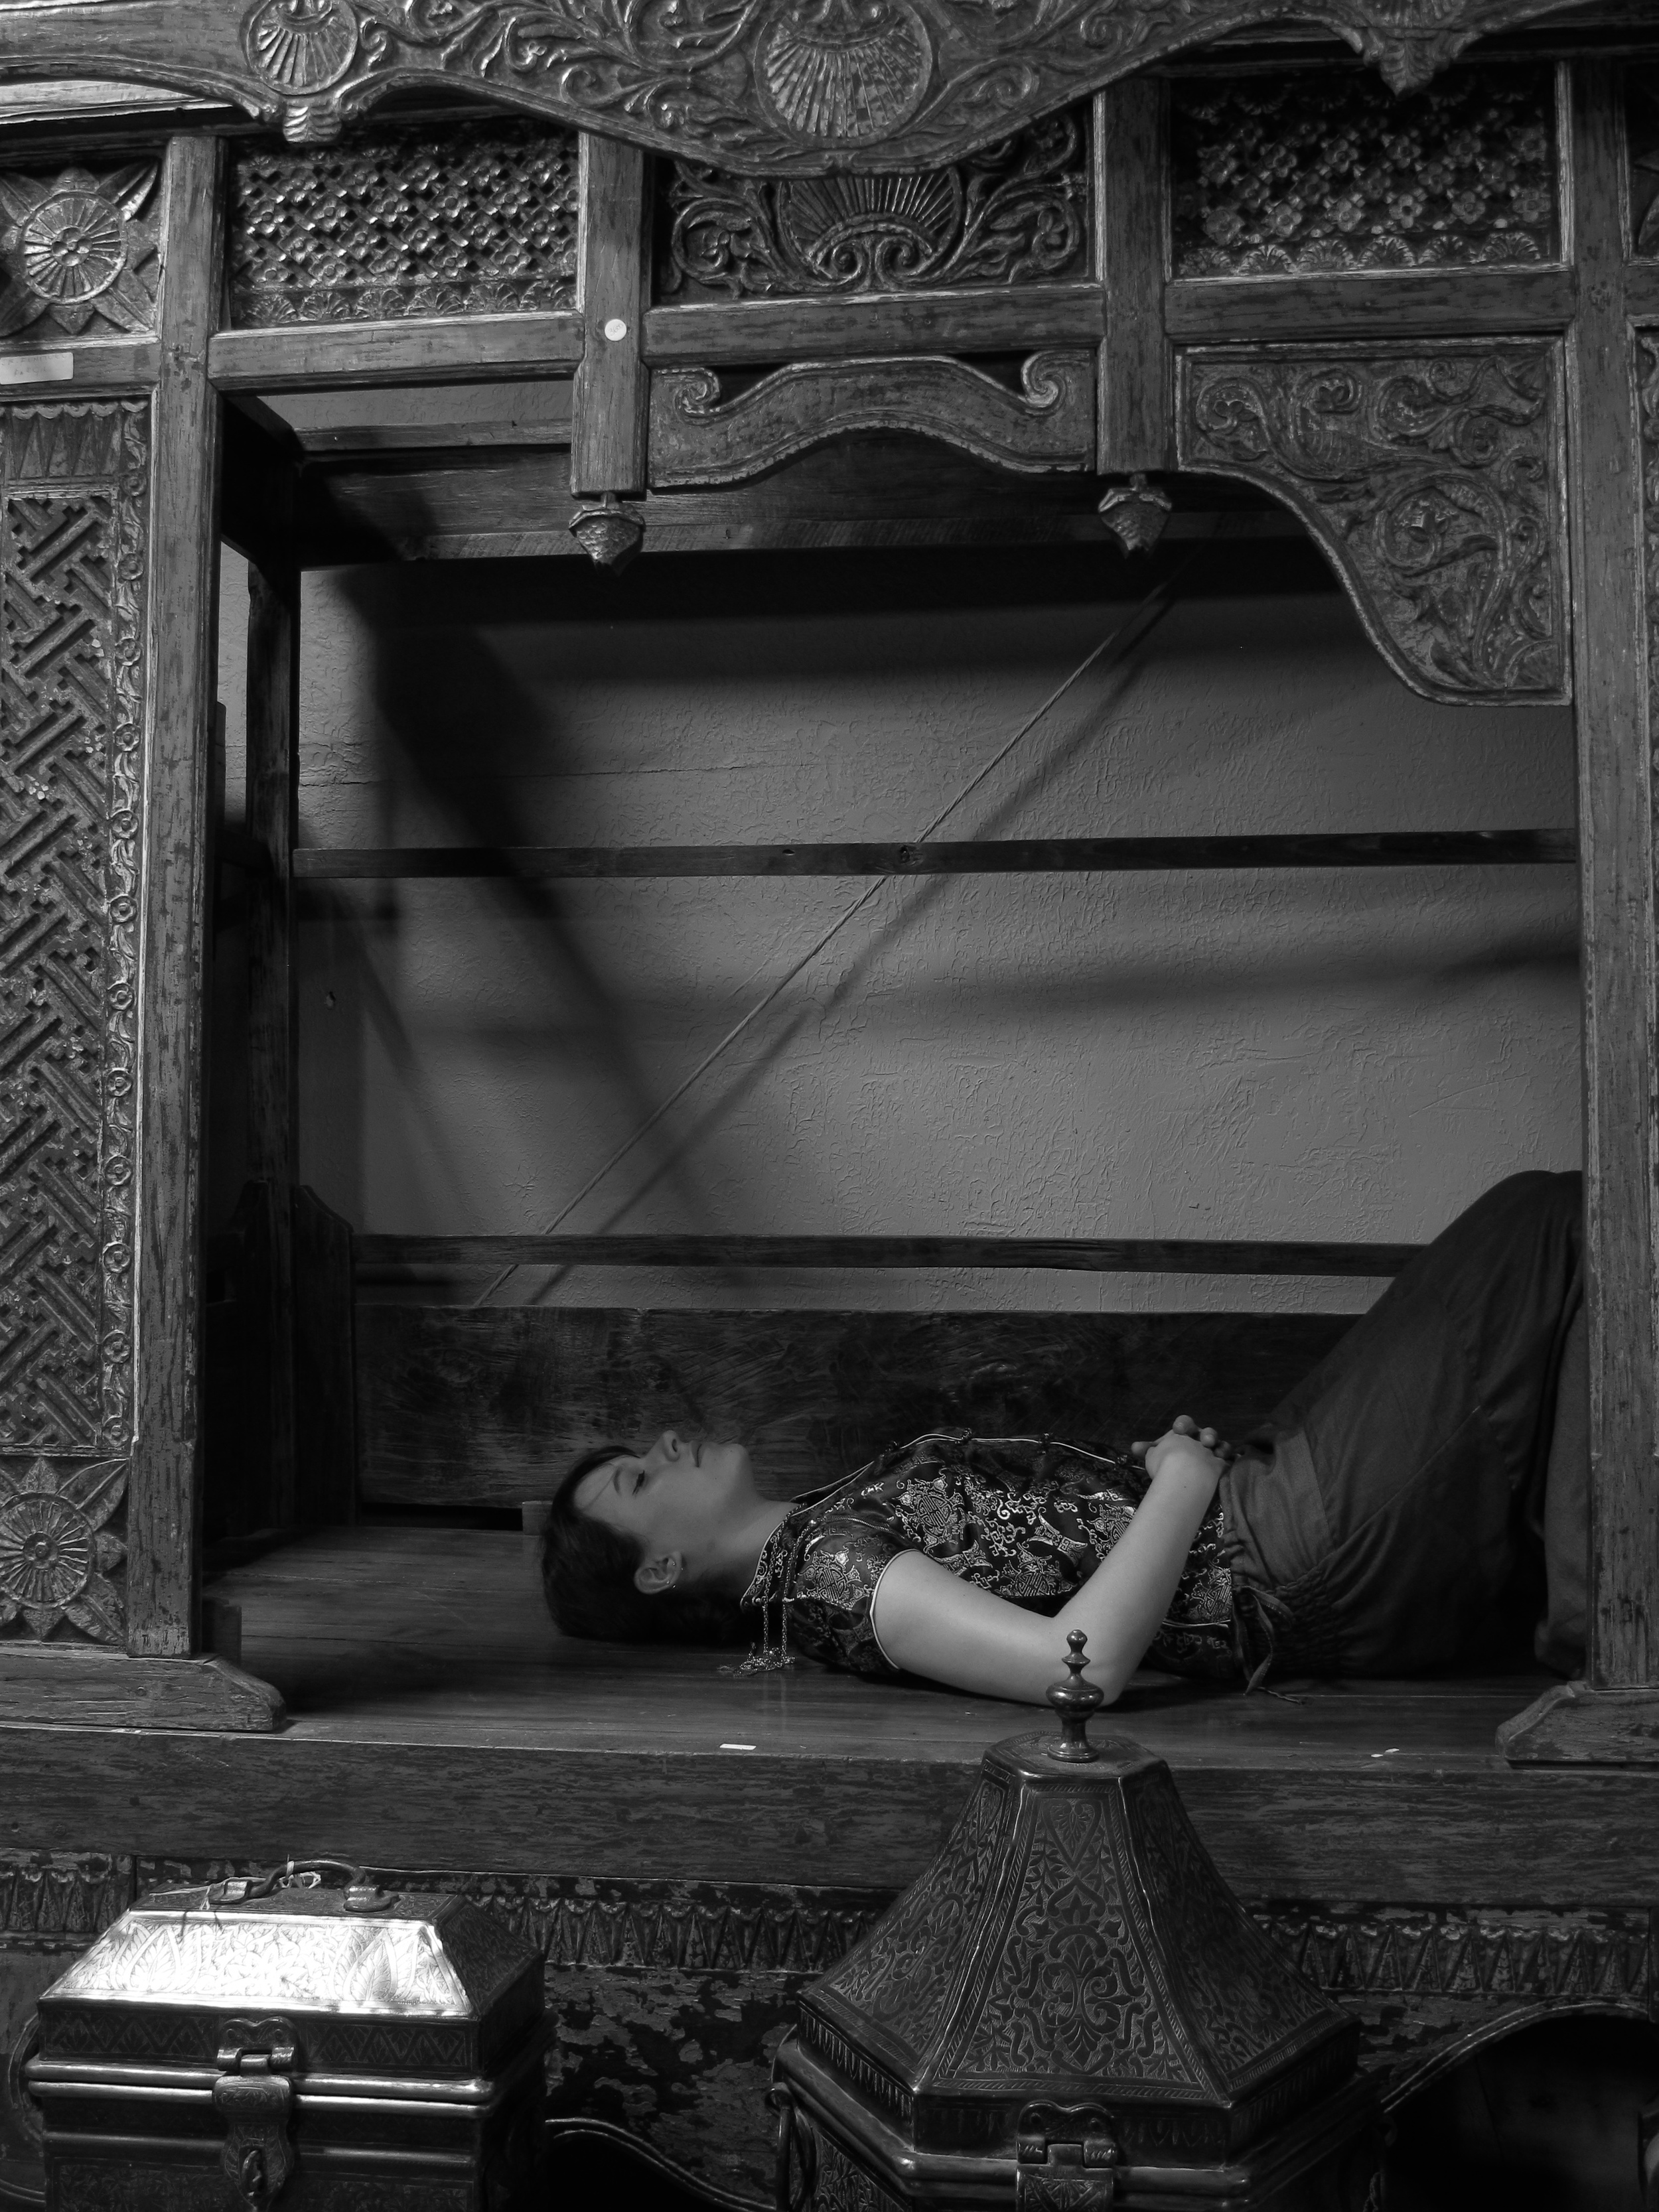 East Asian style photoshoot, with oriental bed and containers